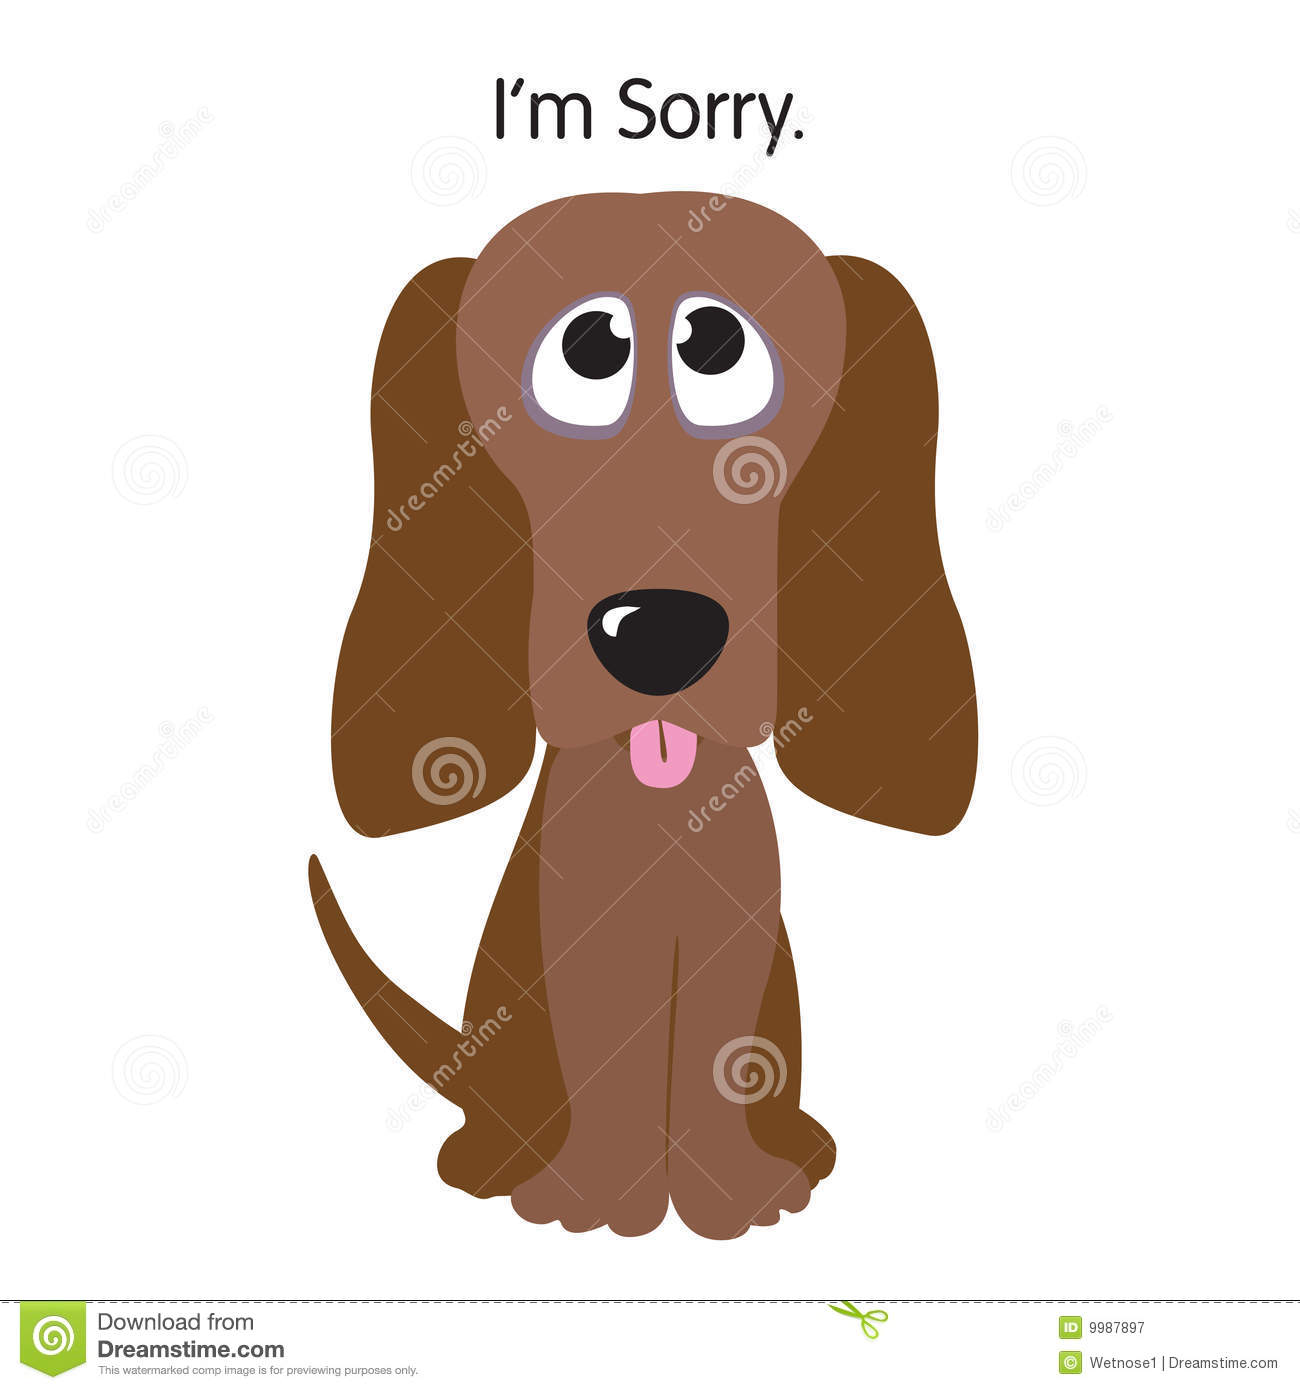 I'm Sorry Clipart